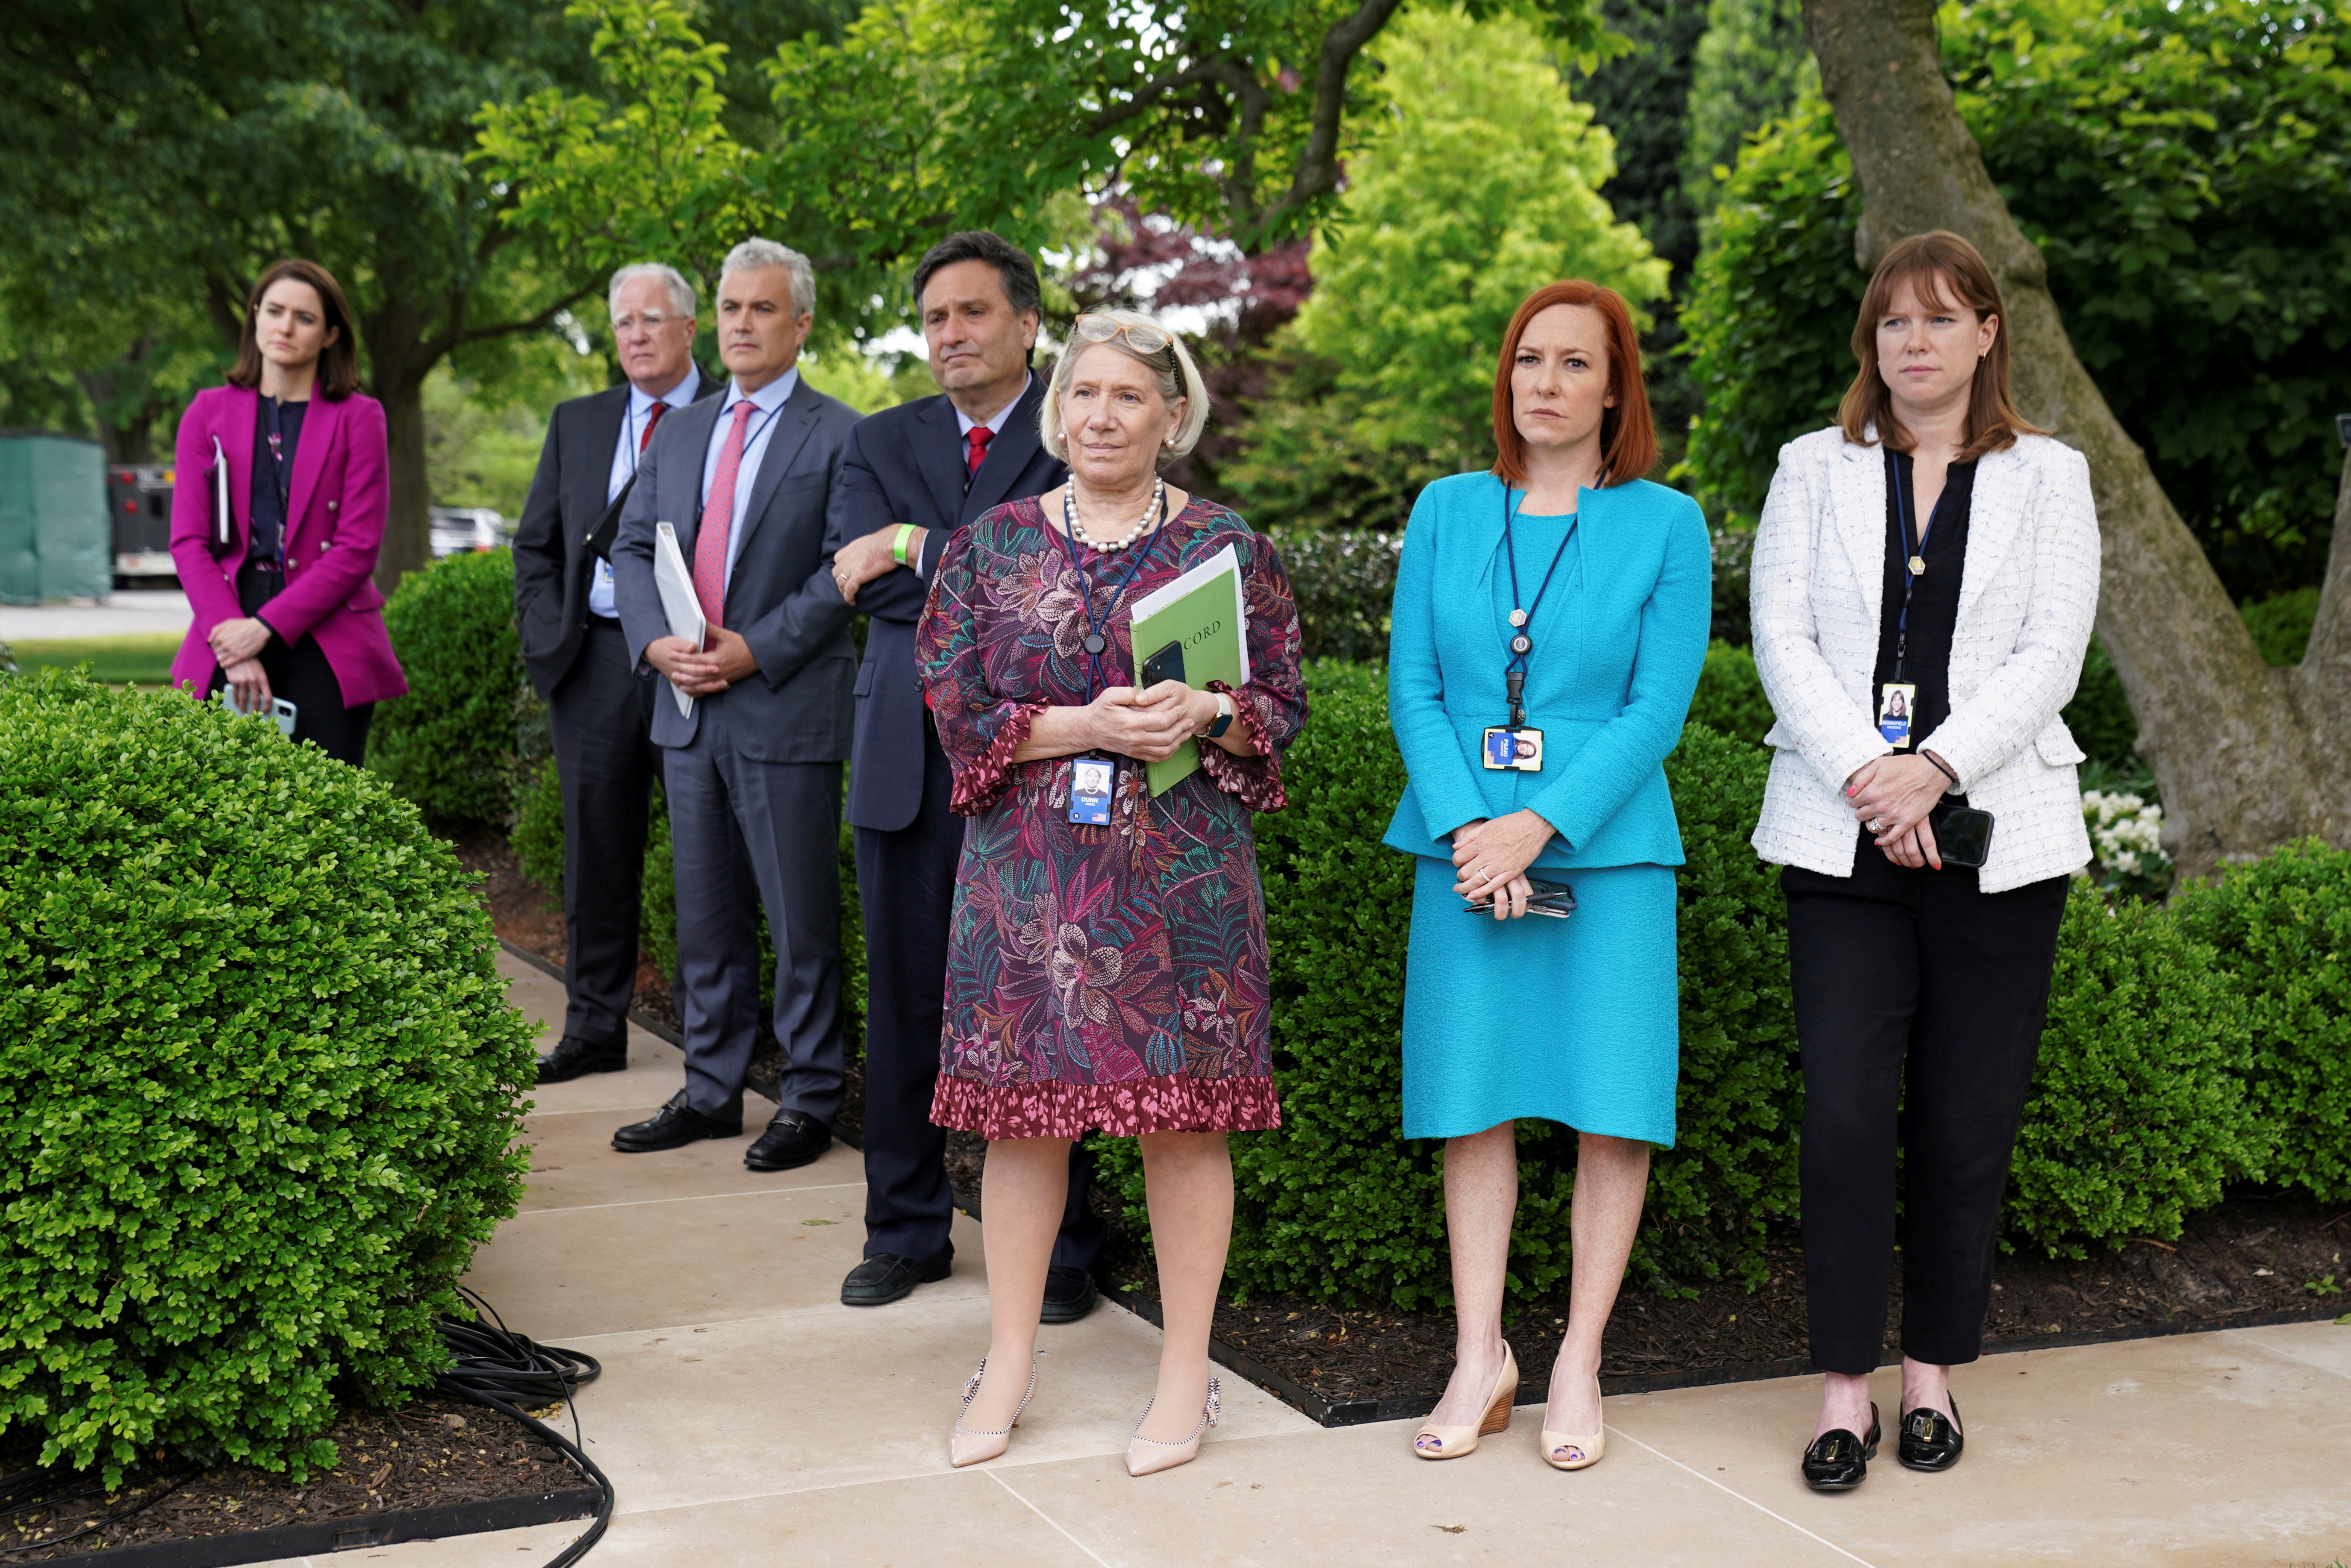 White House Chief of Staff Ron Klain, Senior Advisor to the President Anita Dunn, Press Secretary Jen Psaki, Communications Director Katherine Bedingfield and other staff members stand without protective face masks in the Rose Garden of the White House in Washington, U.S., May 13, 2021. REUTERS/Kevin Lamarque